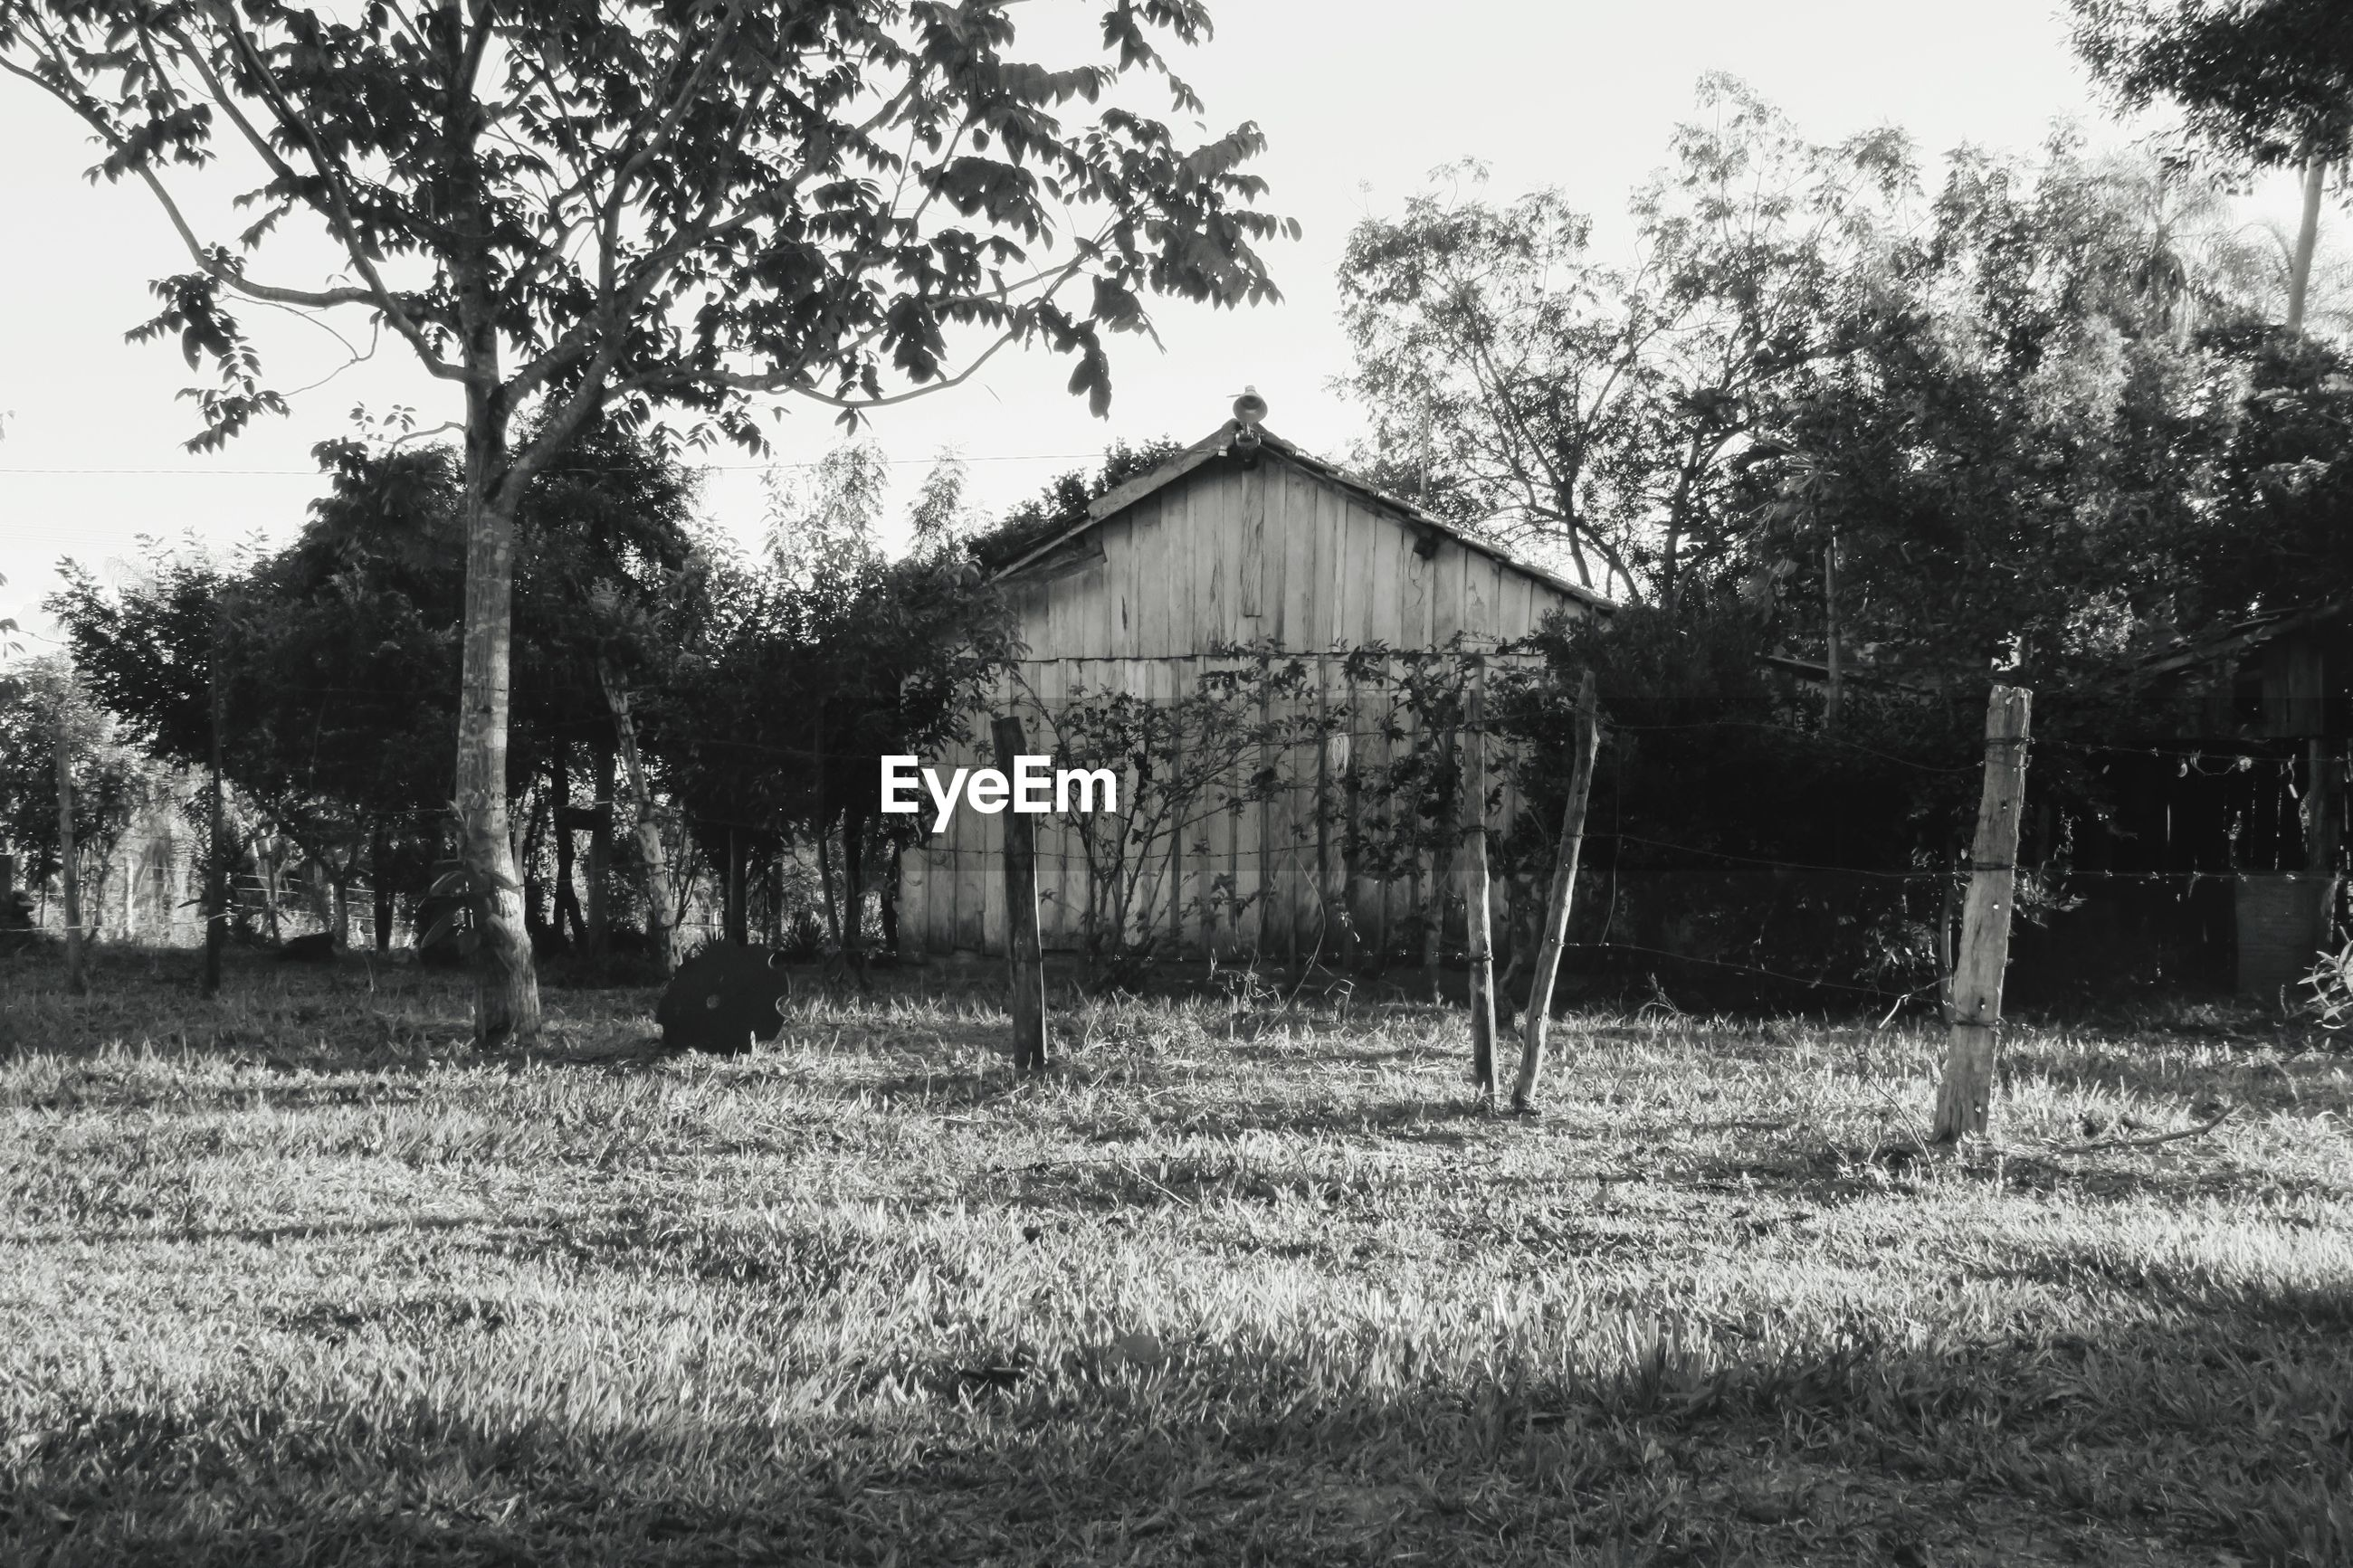 VIEW OF BARN ON FIELD